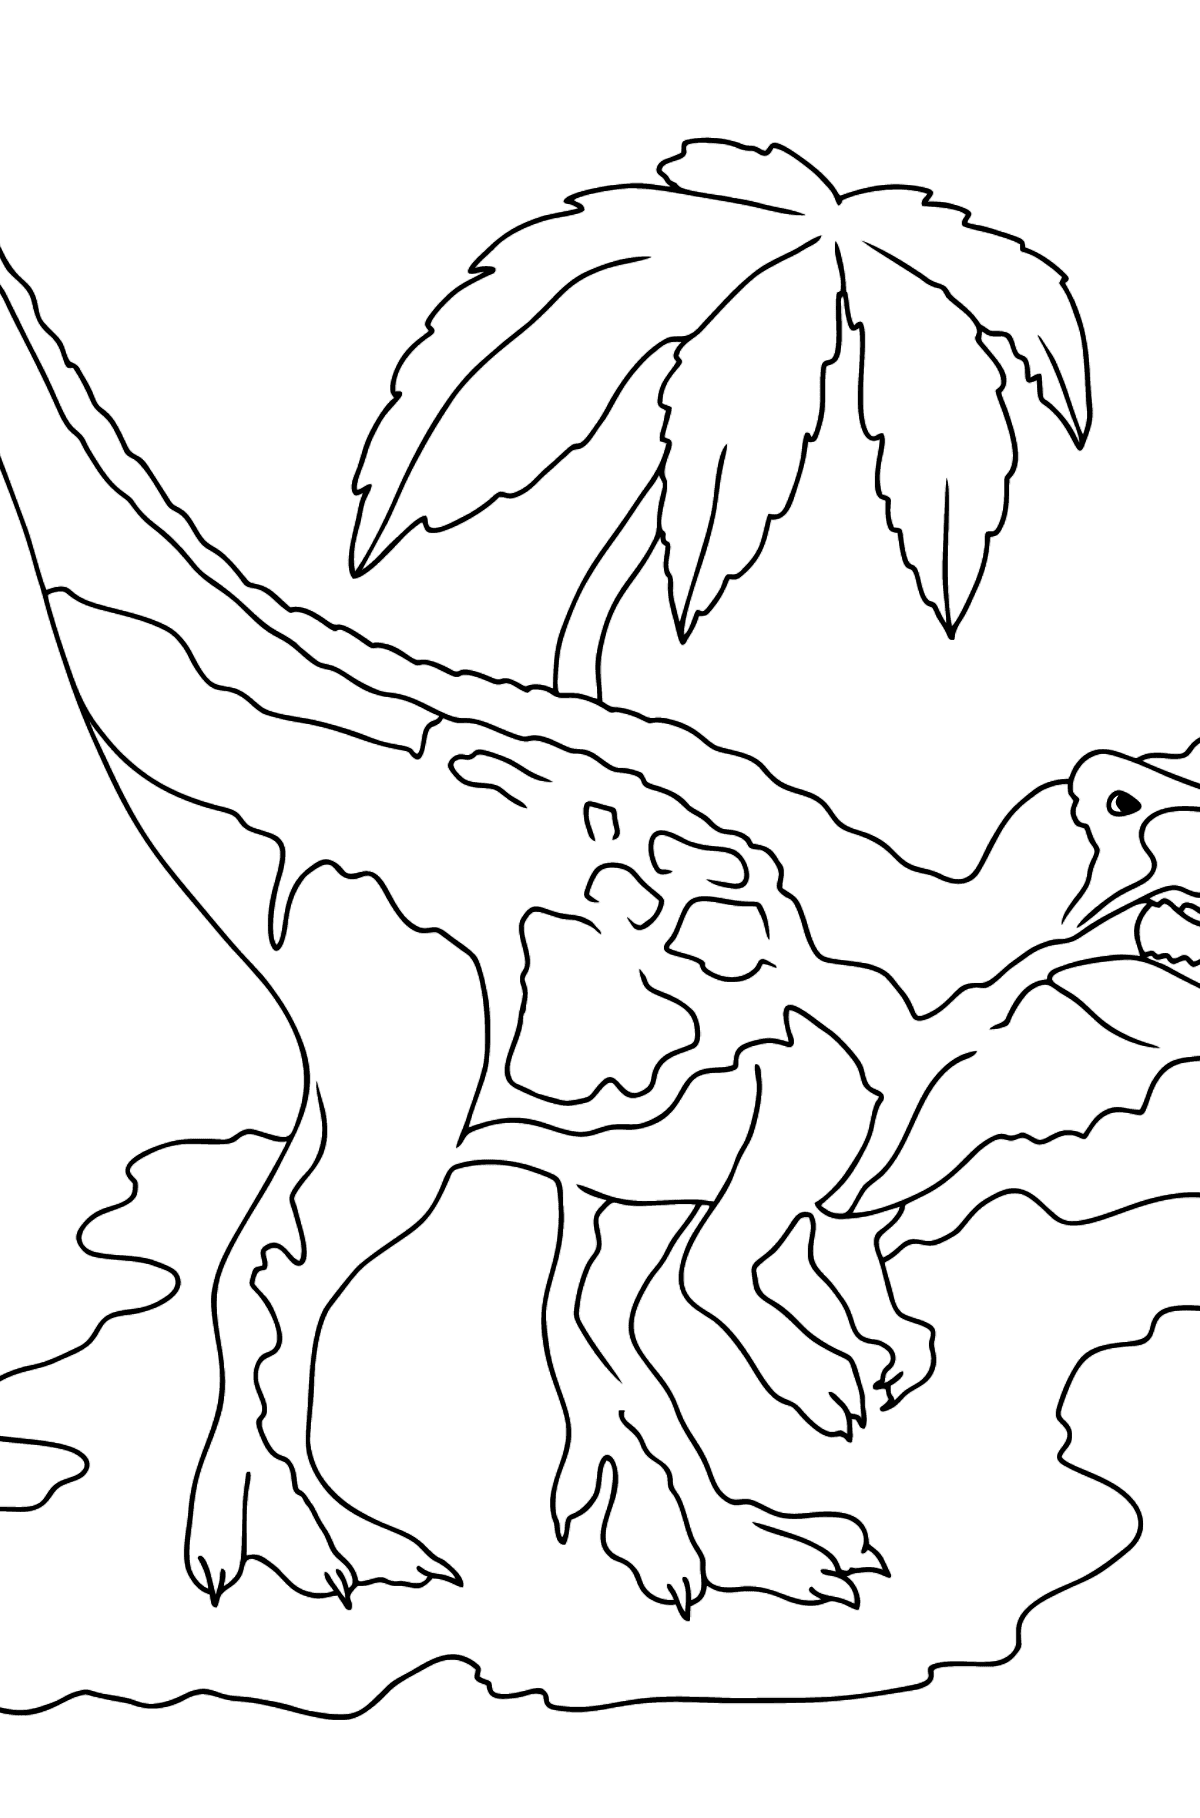 Coloring Page - Tyrannosaurus - The Best Hunter Among Dinosaurs - Coloring Pages for Kids